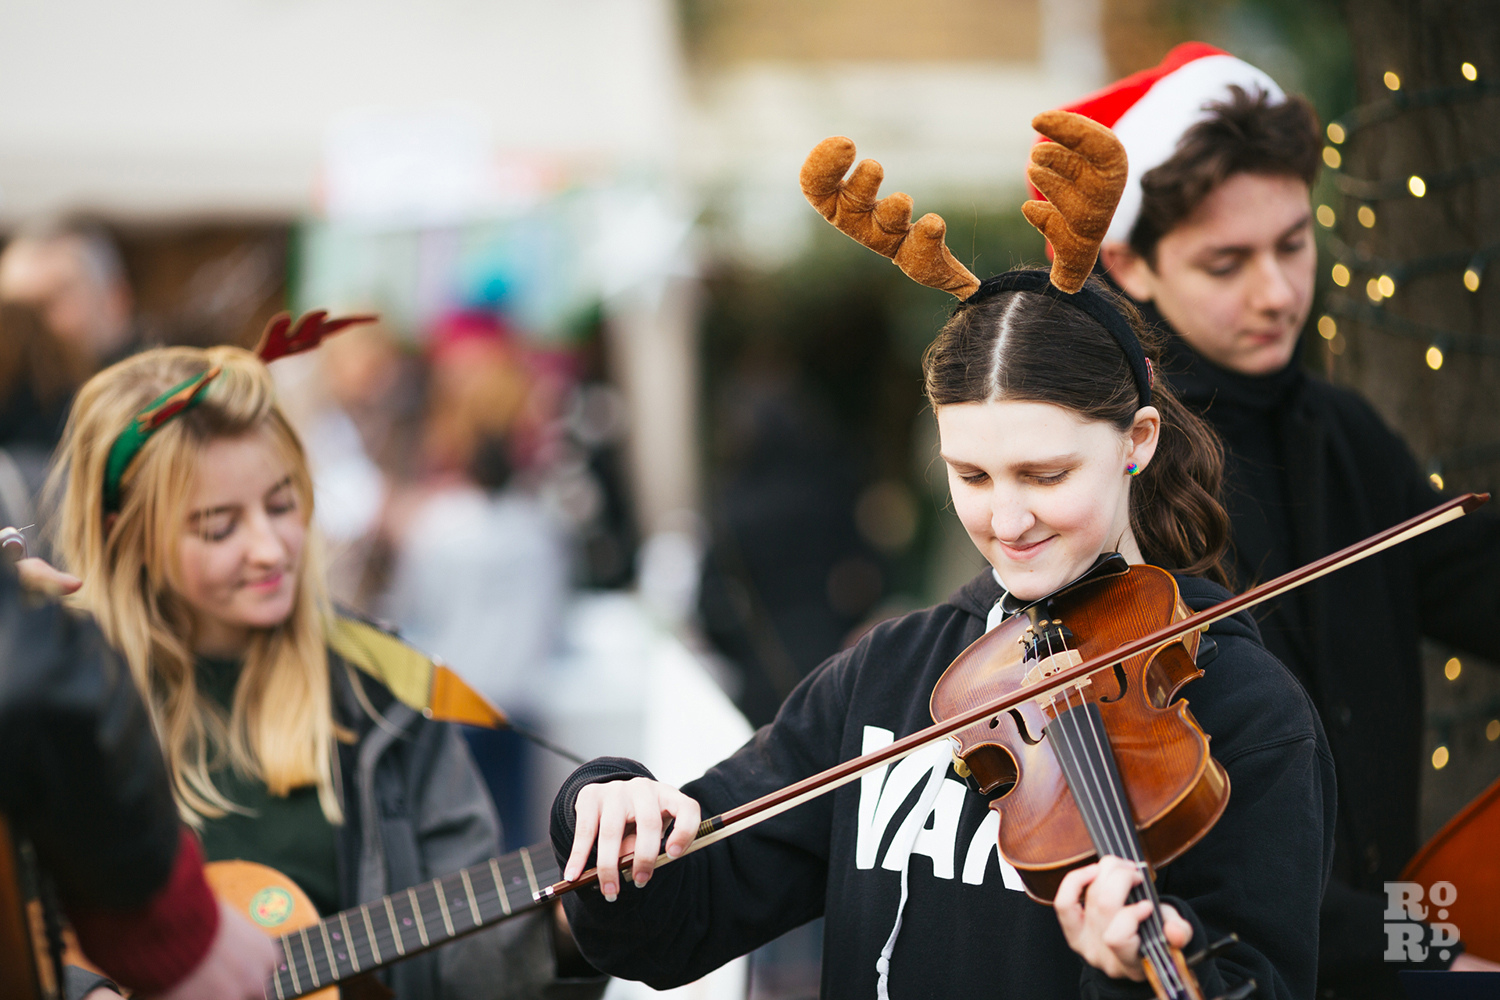 Young woman playing violin and wearing antlers at Roman Road Christmas Fair 2016